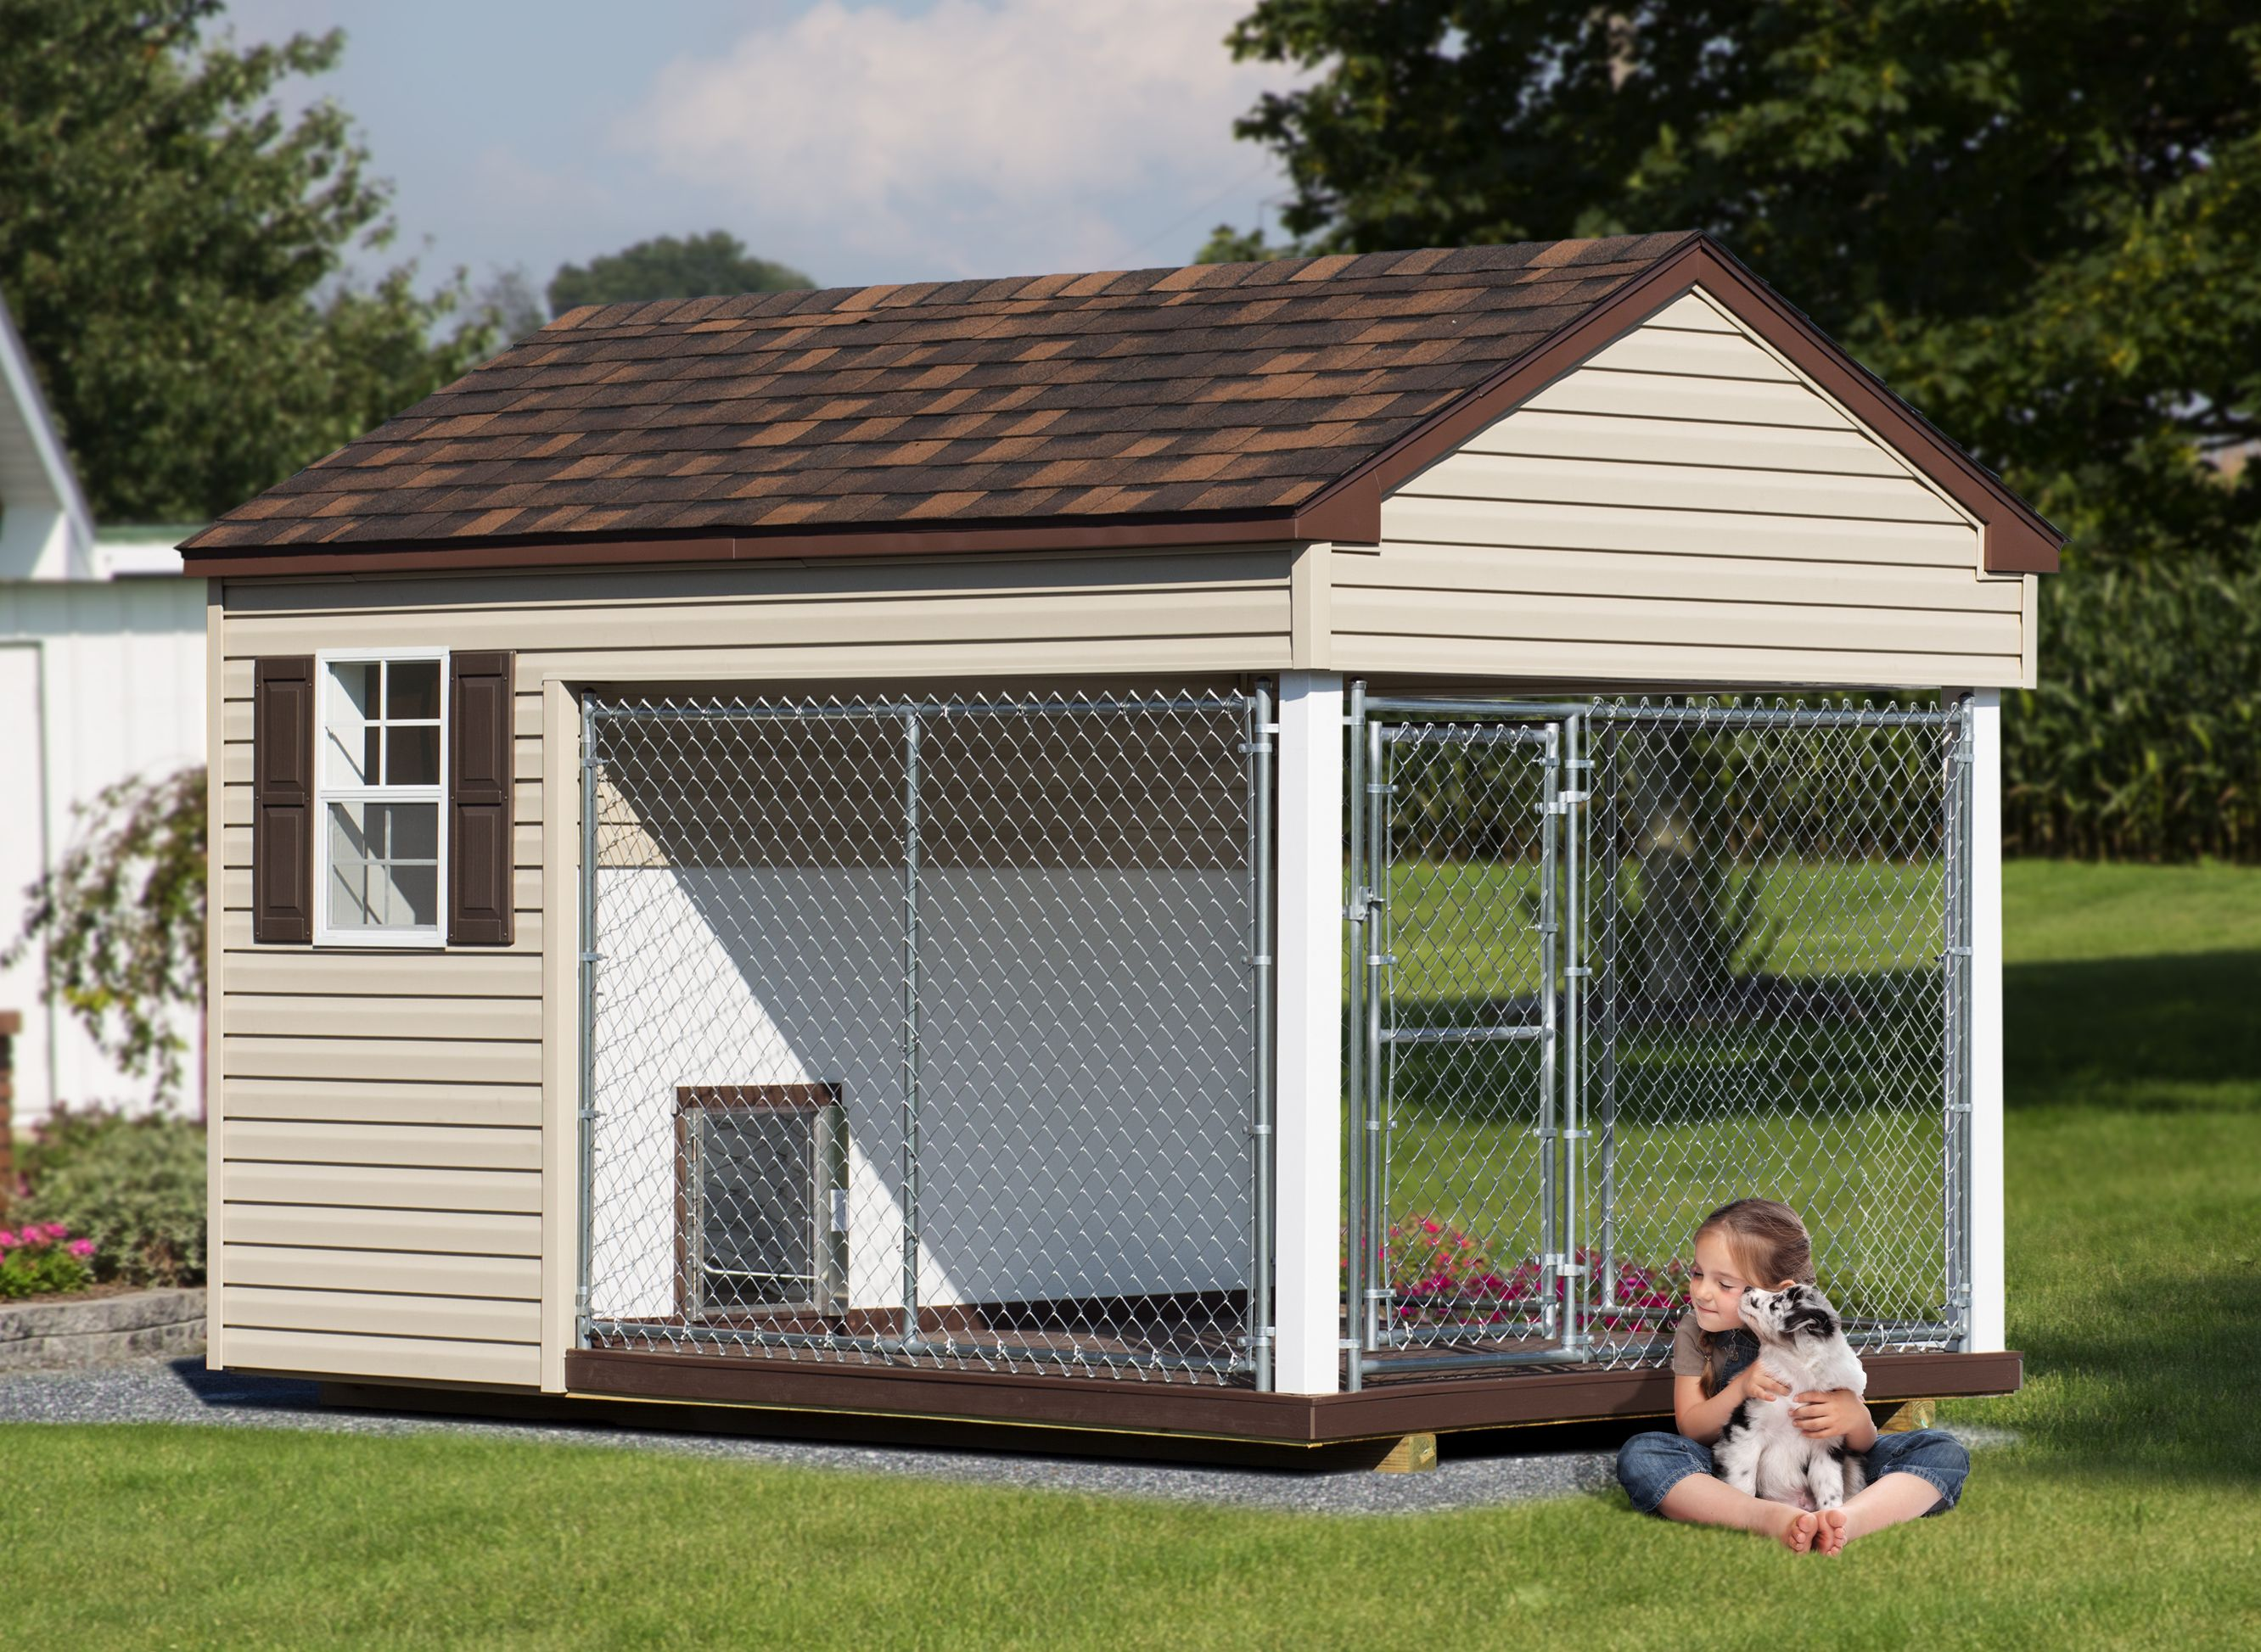 Large Dog Kennels For Outside From The Dog Kennel Collection Dog